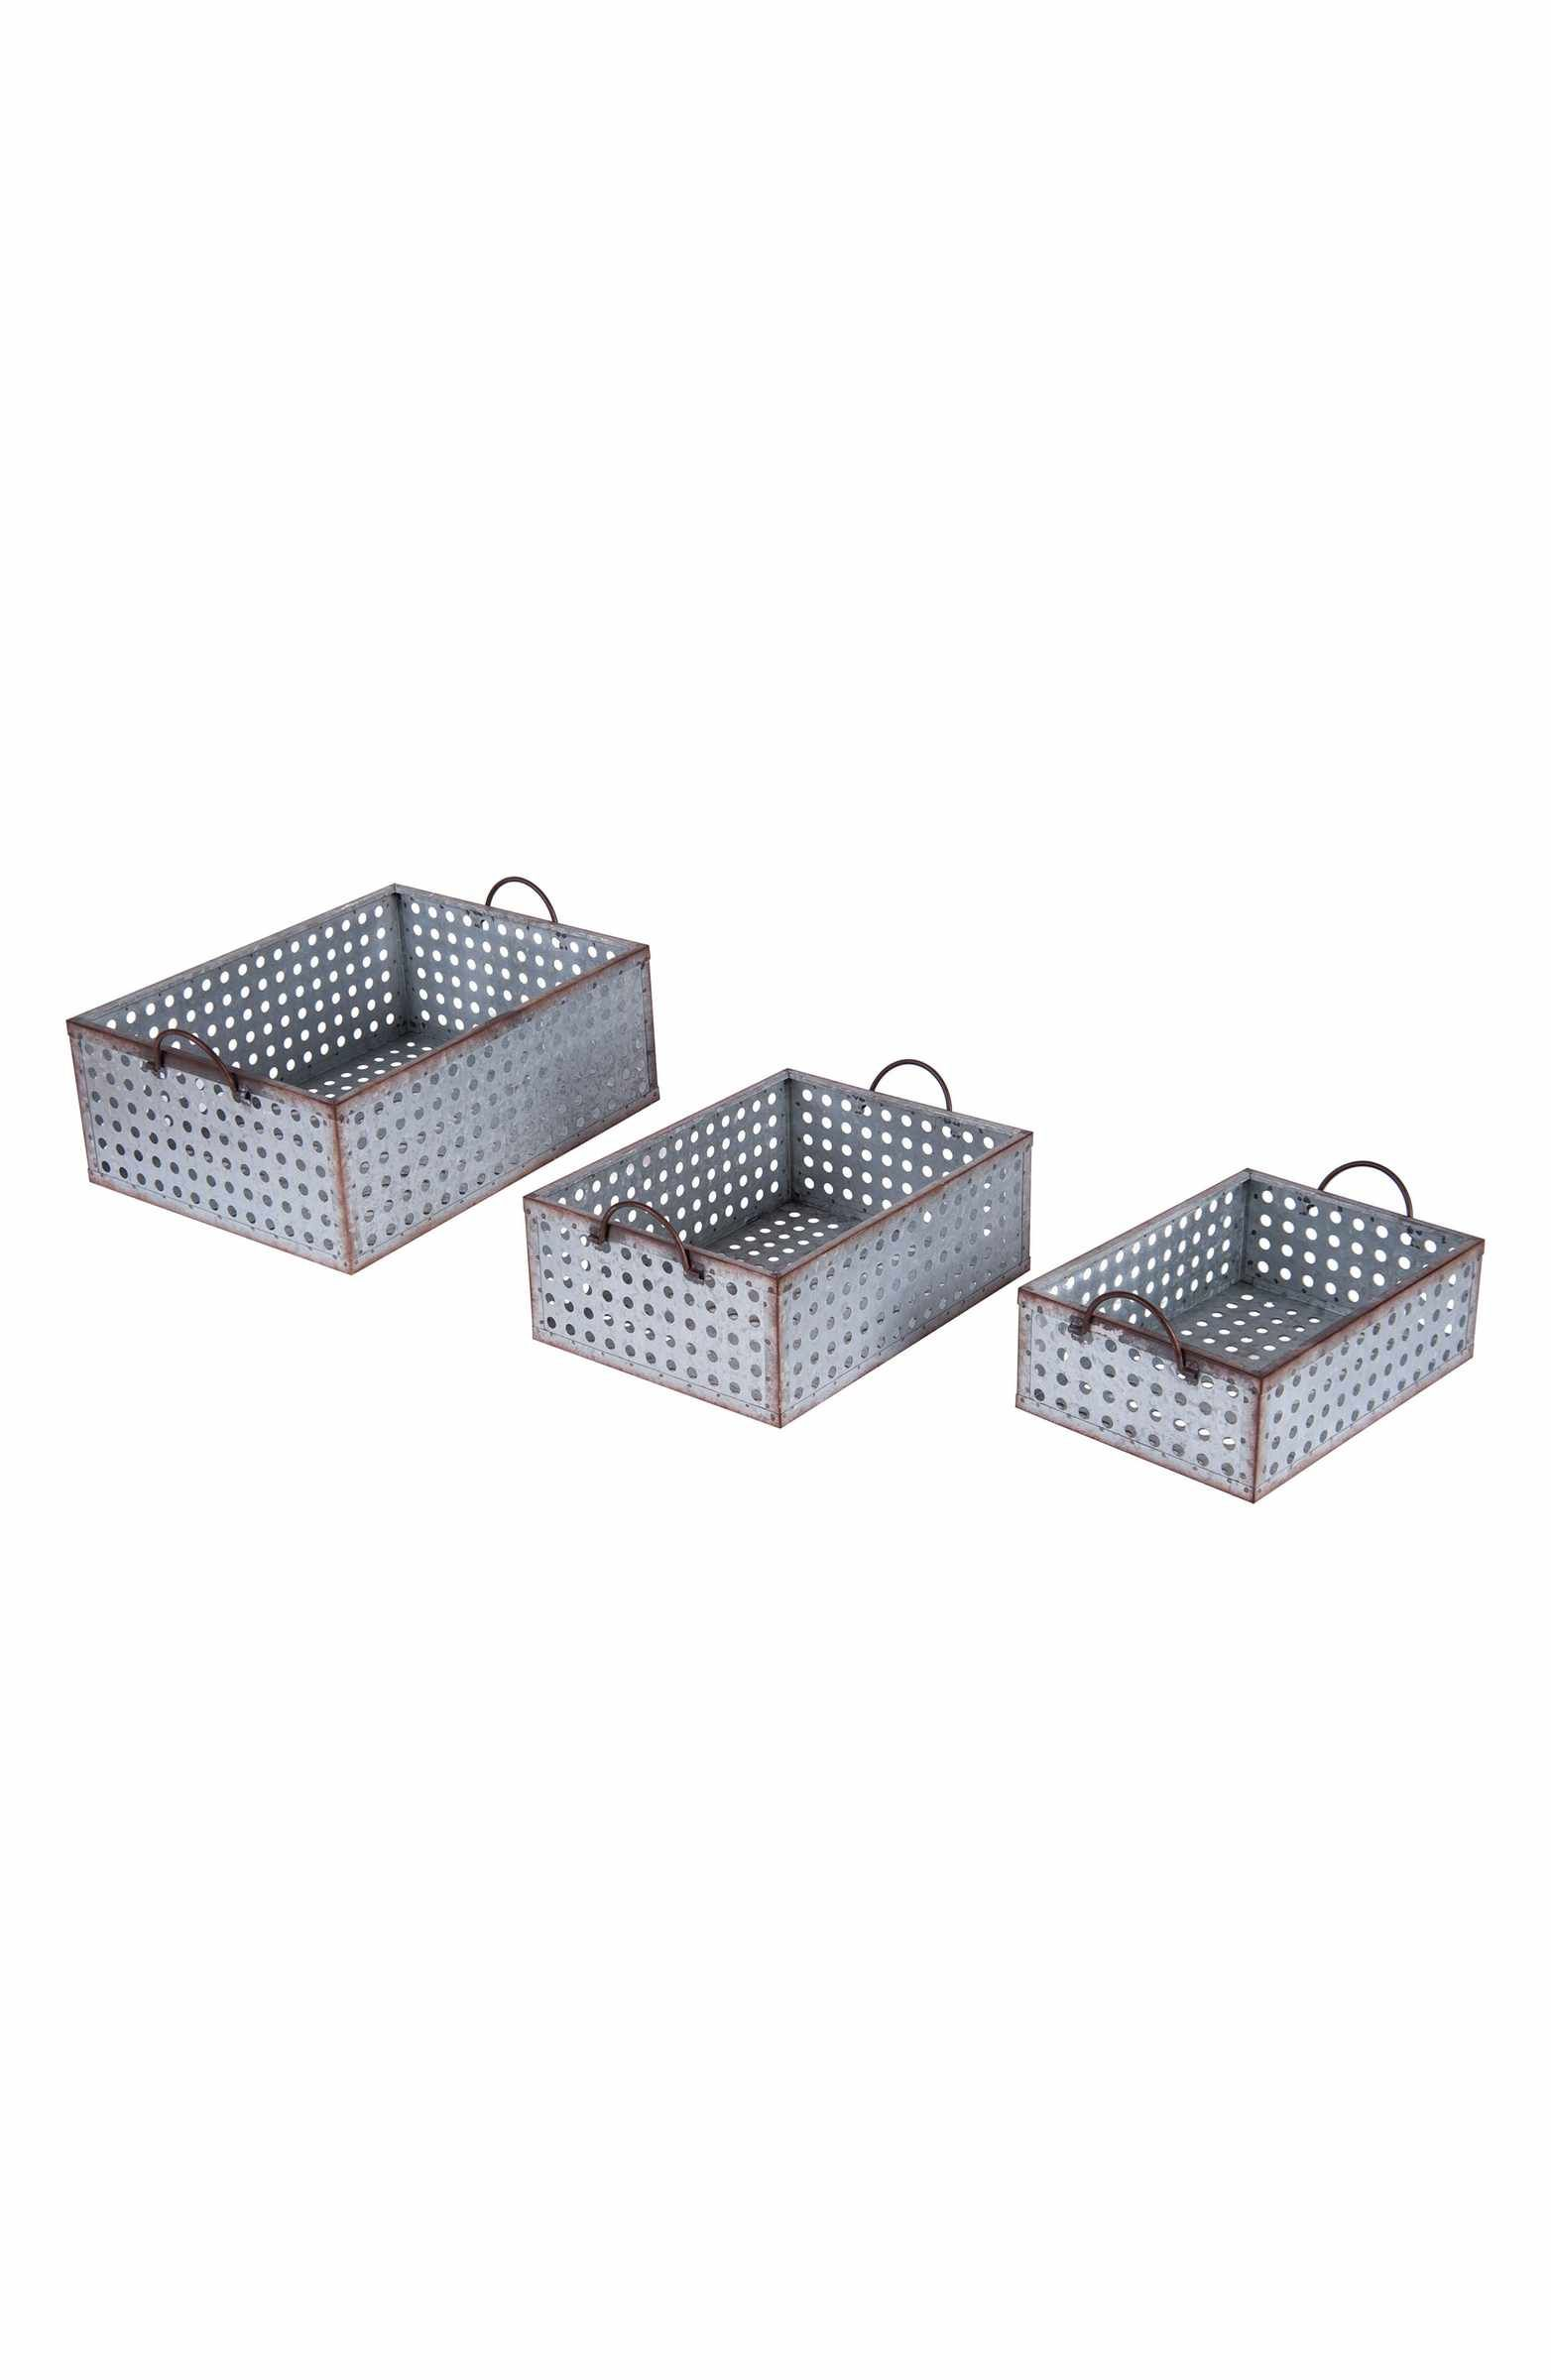 Main Image - Foreside Set of 3 Perforated Baskets